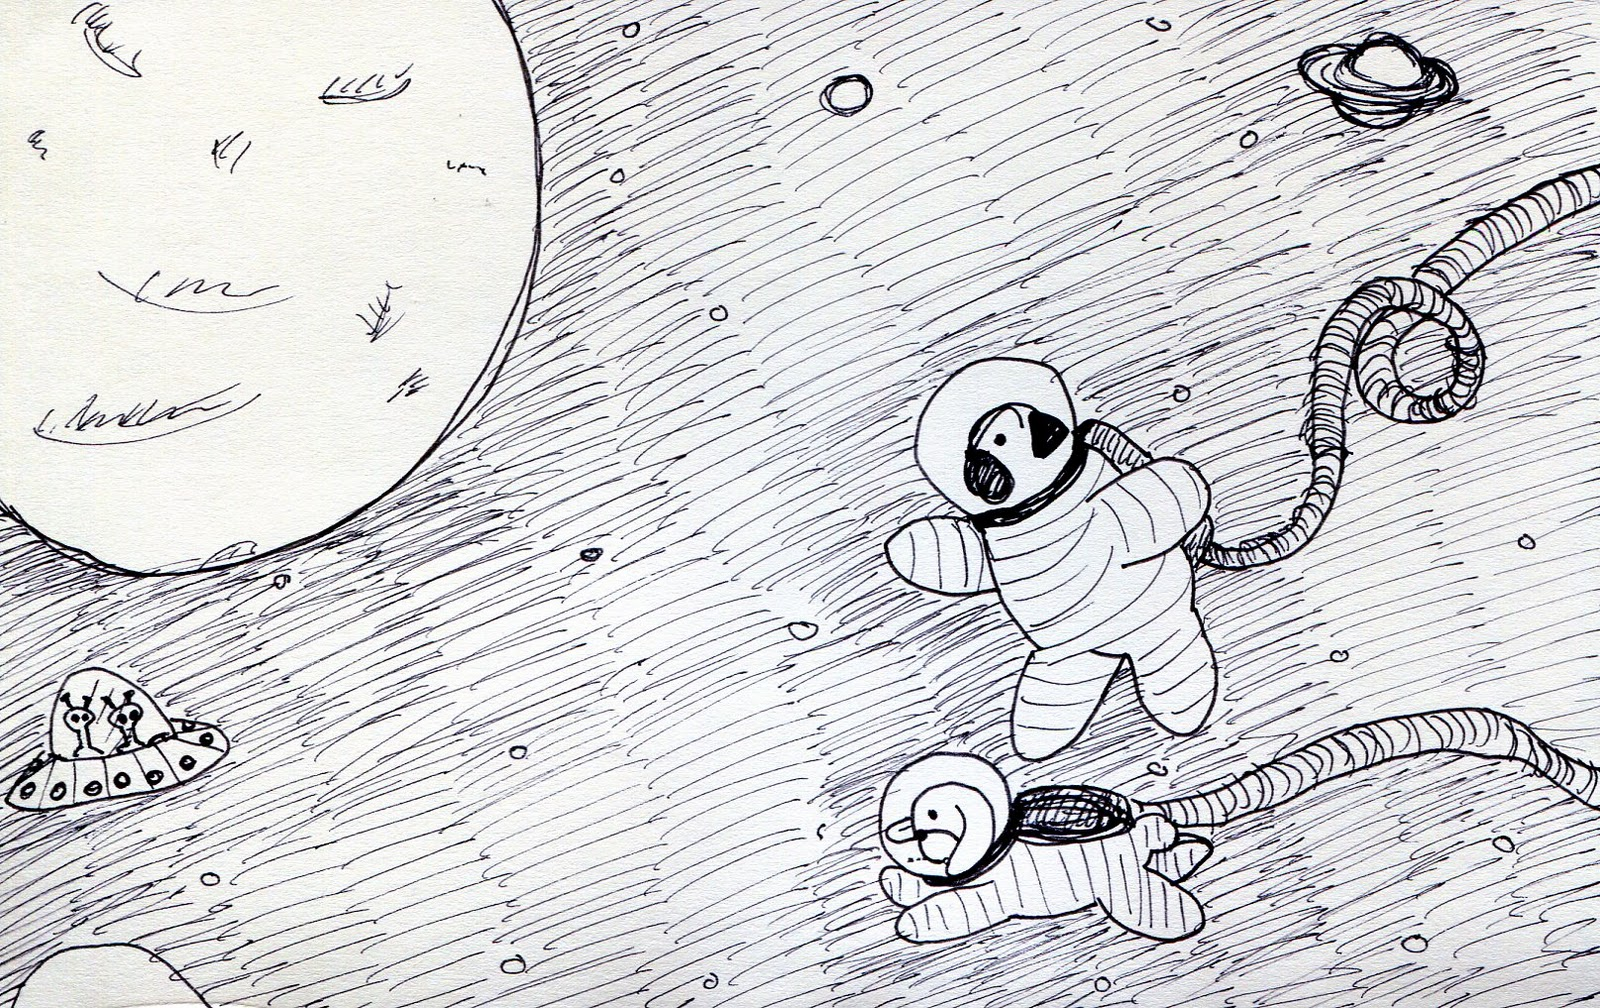 space planets pencil drawing - photo #24